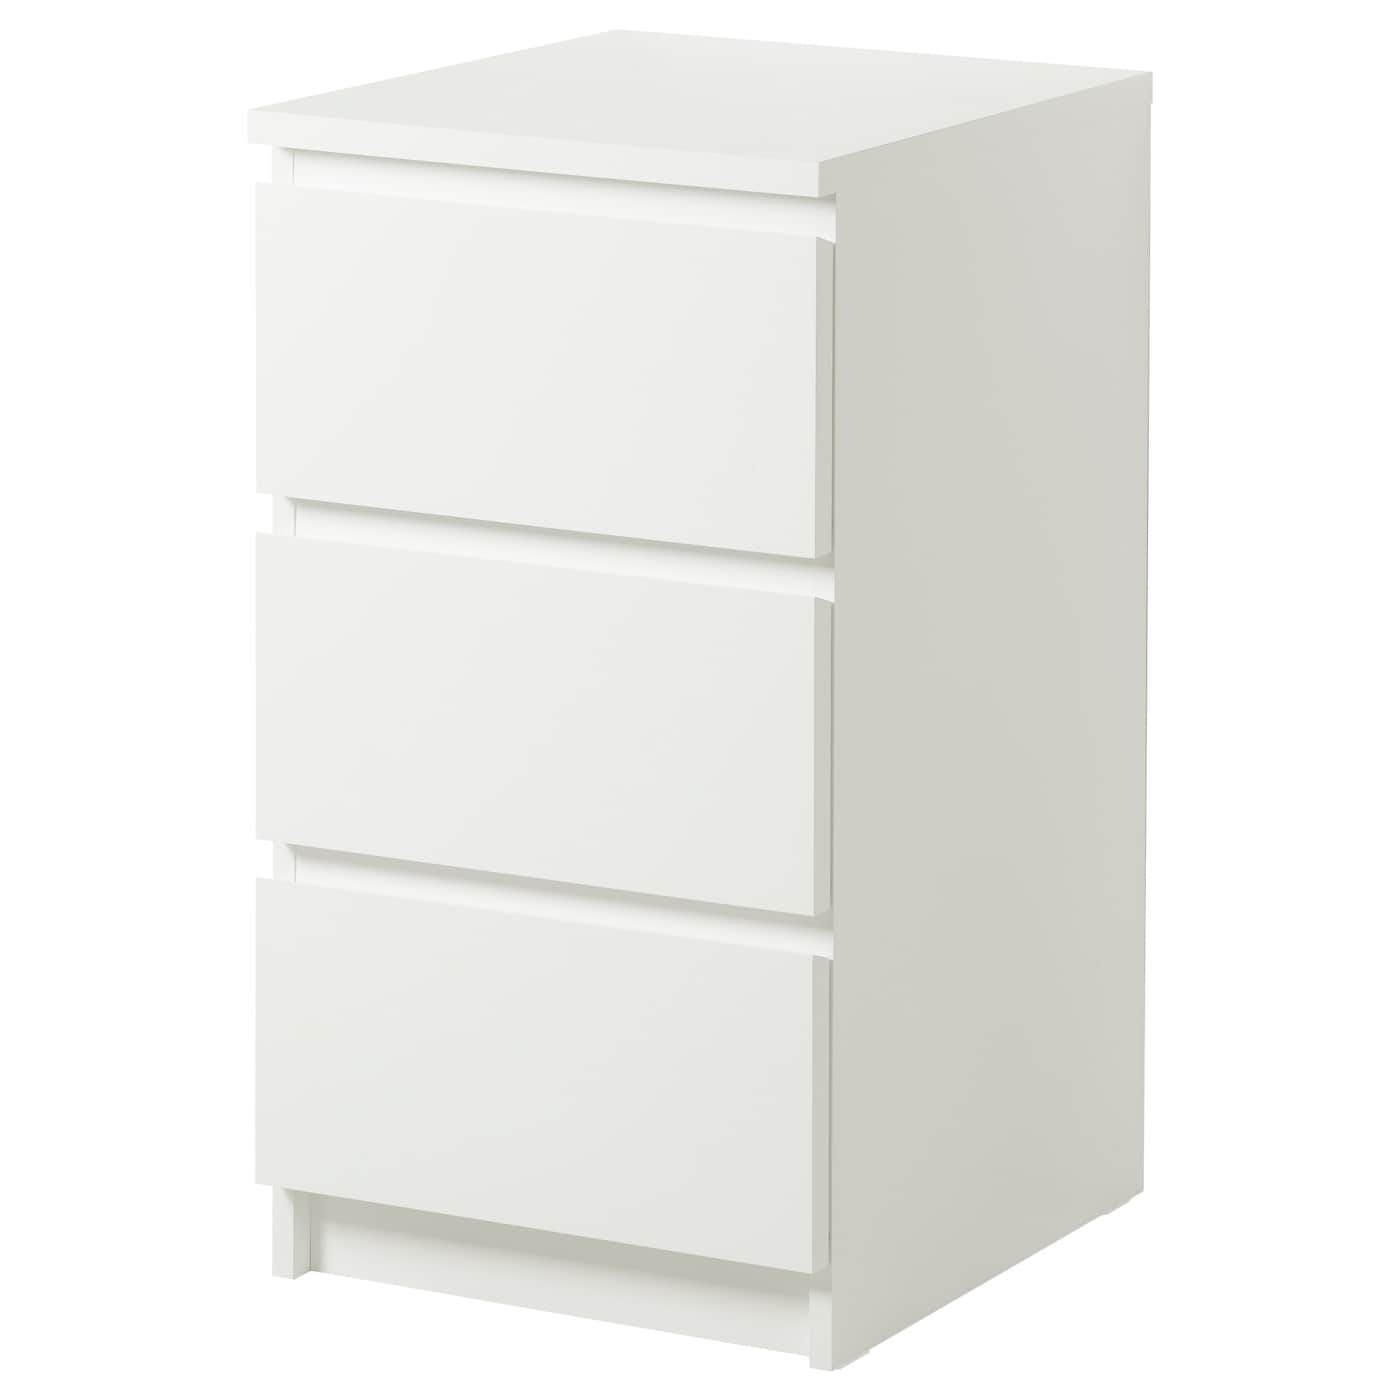 Malm chest of 3 drawers white 40x78 cm ikea for Schuhschrank schmal hoch